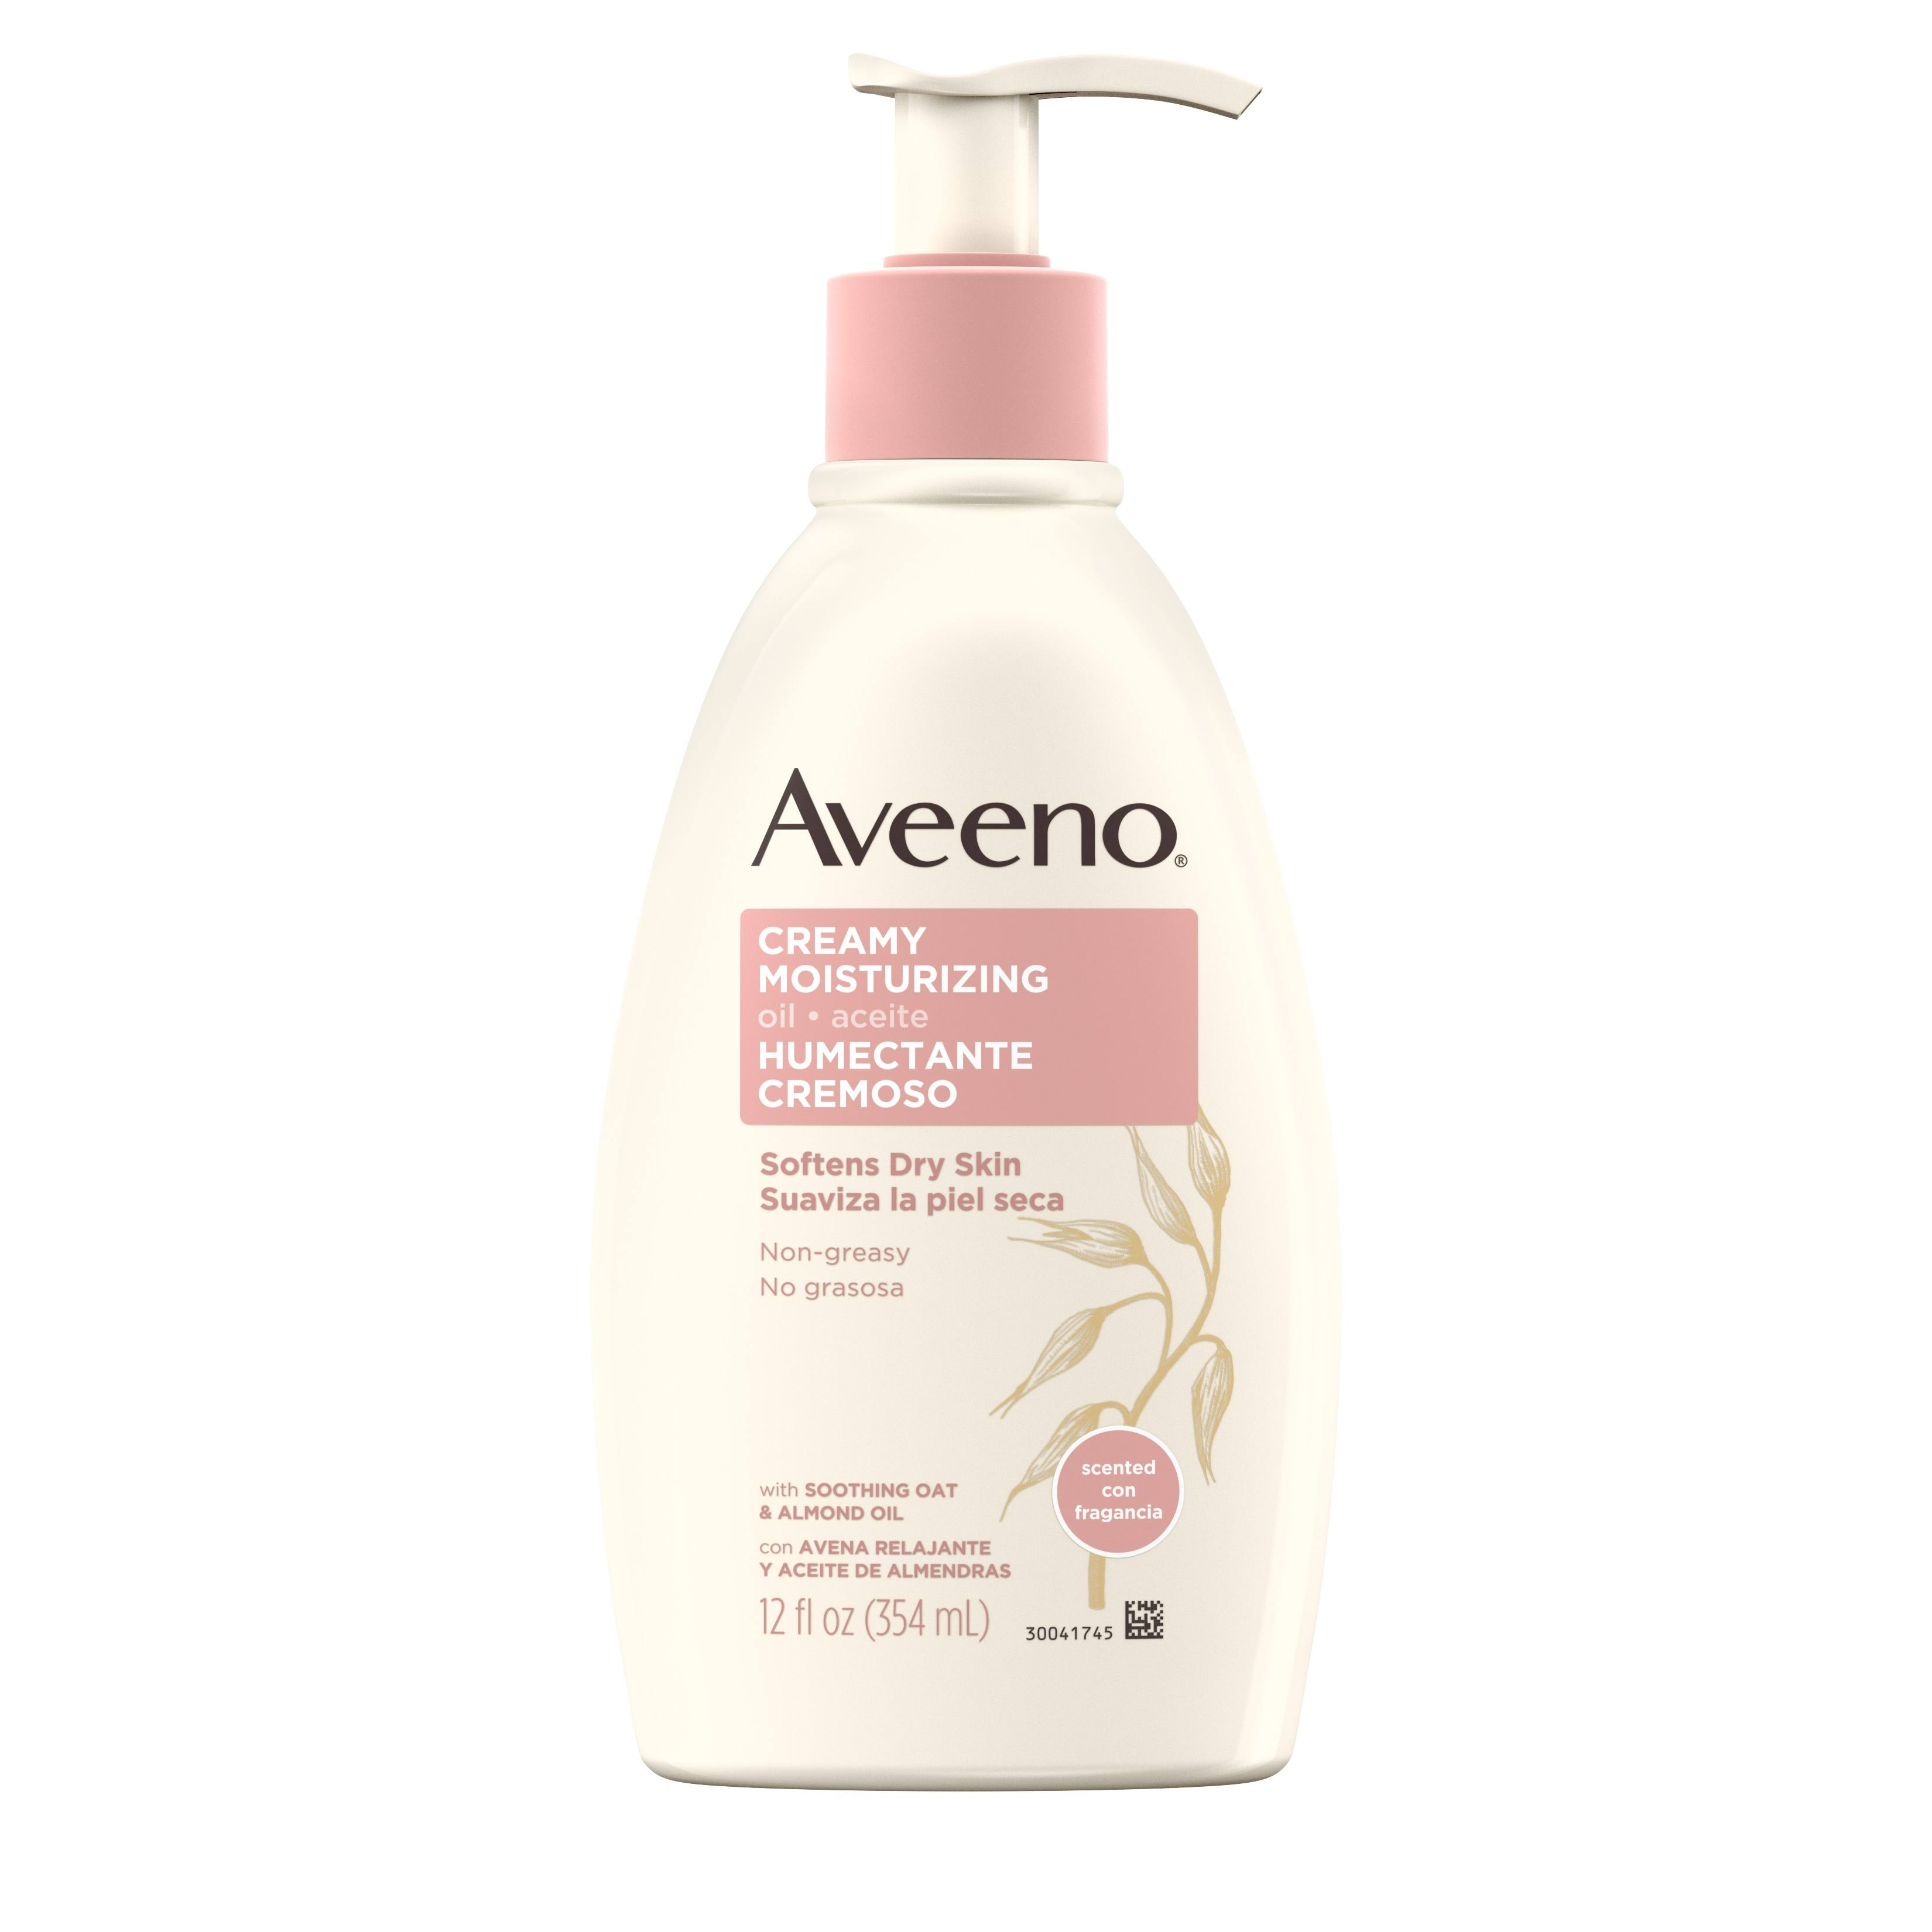 Aveeno Active Naturals Creamy Moisturizing Oil - 12oz